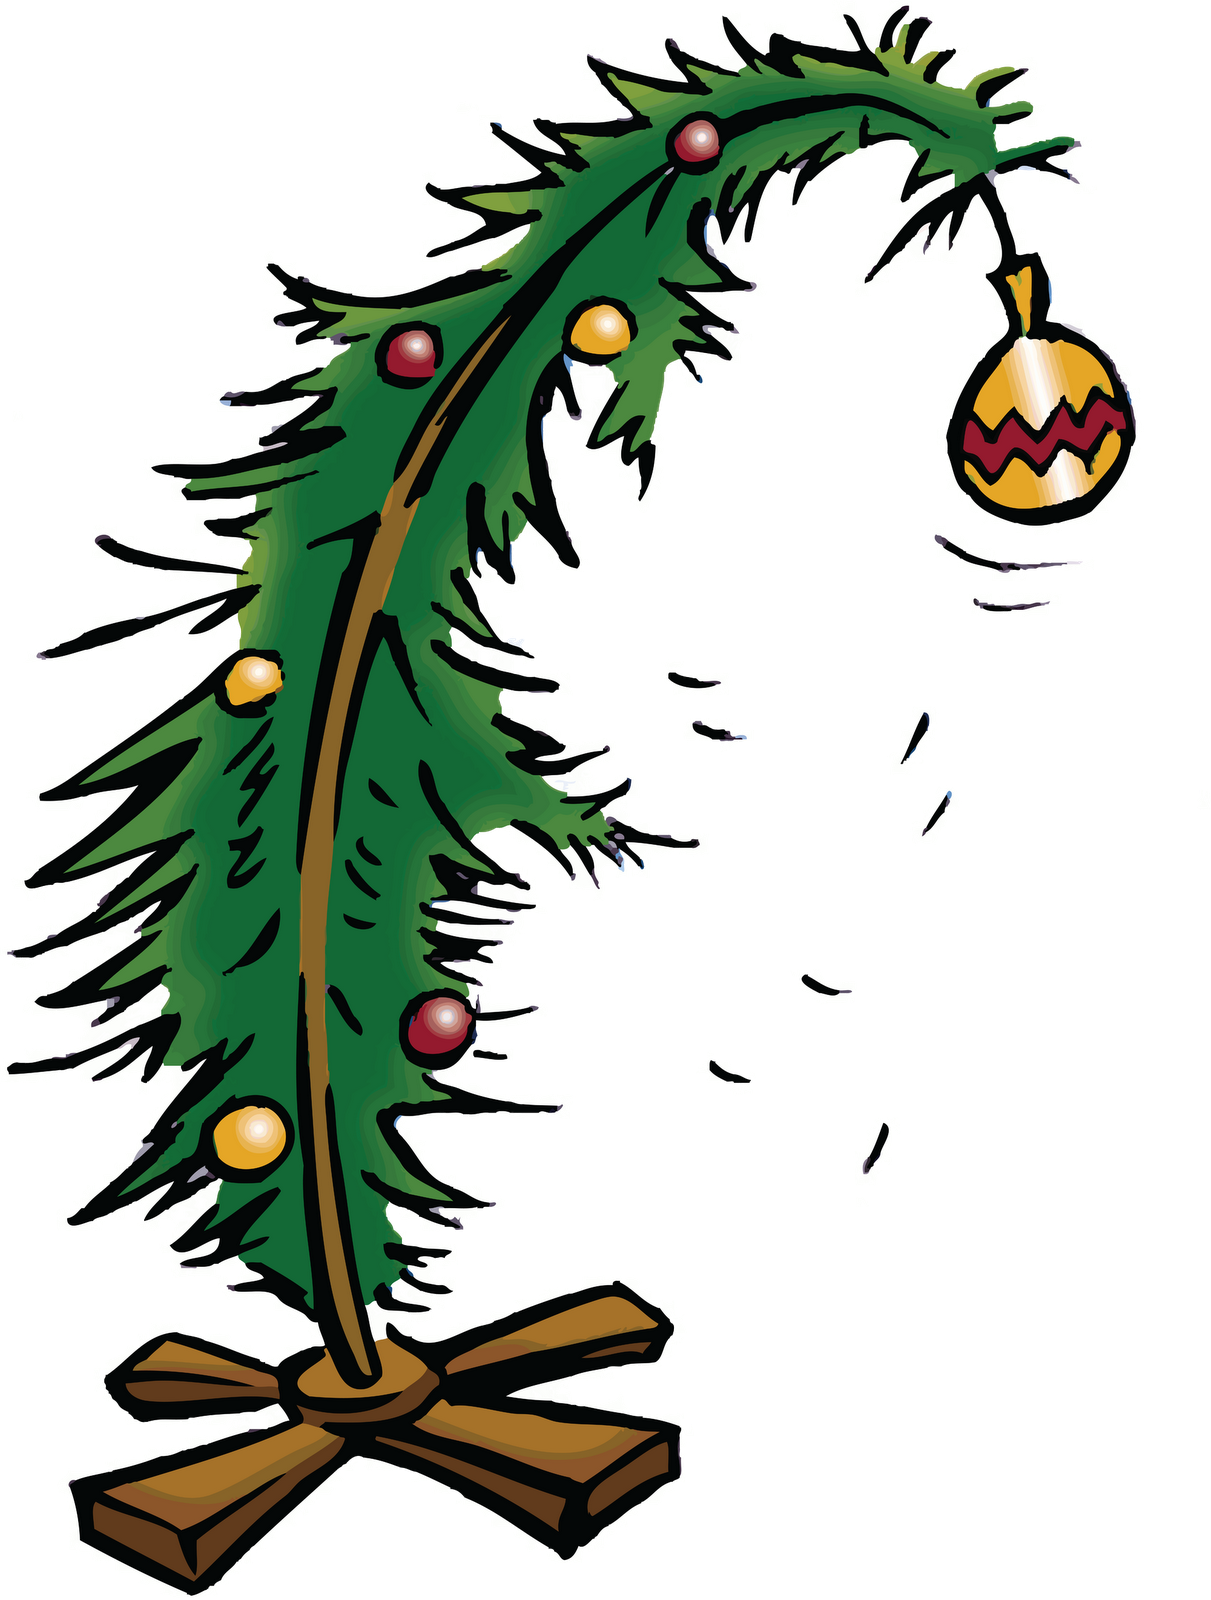 How the grinch stole christmas clipart jpg transparent How the Grinch Stole Christmas! Clip art - willow tree 1211*1600 ... jpg transparent